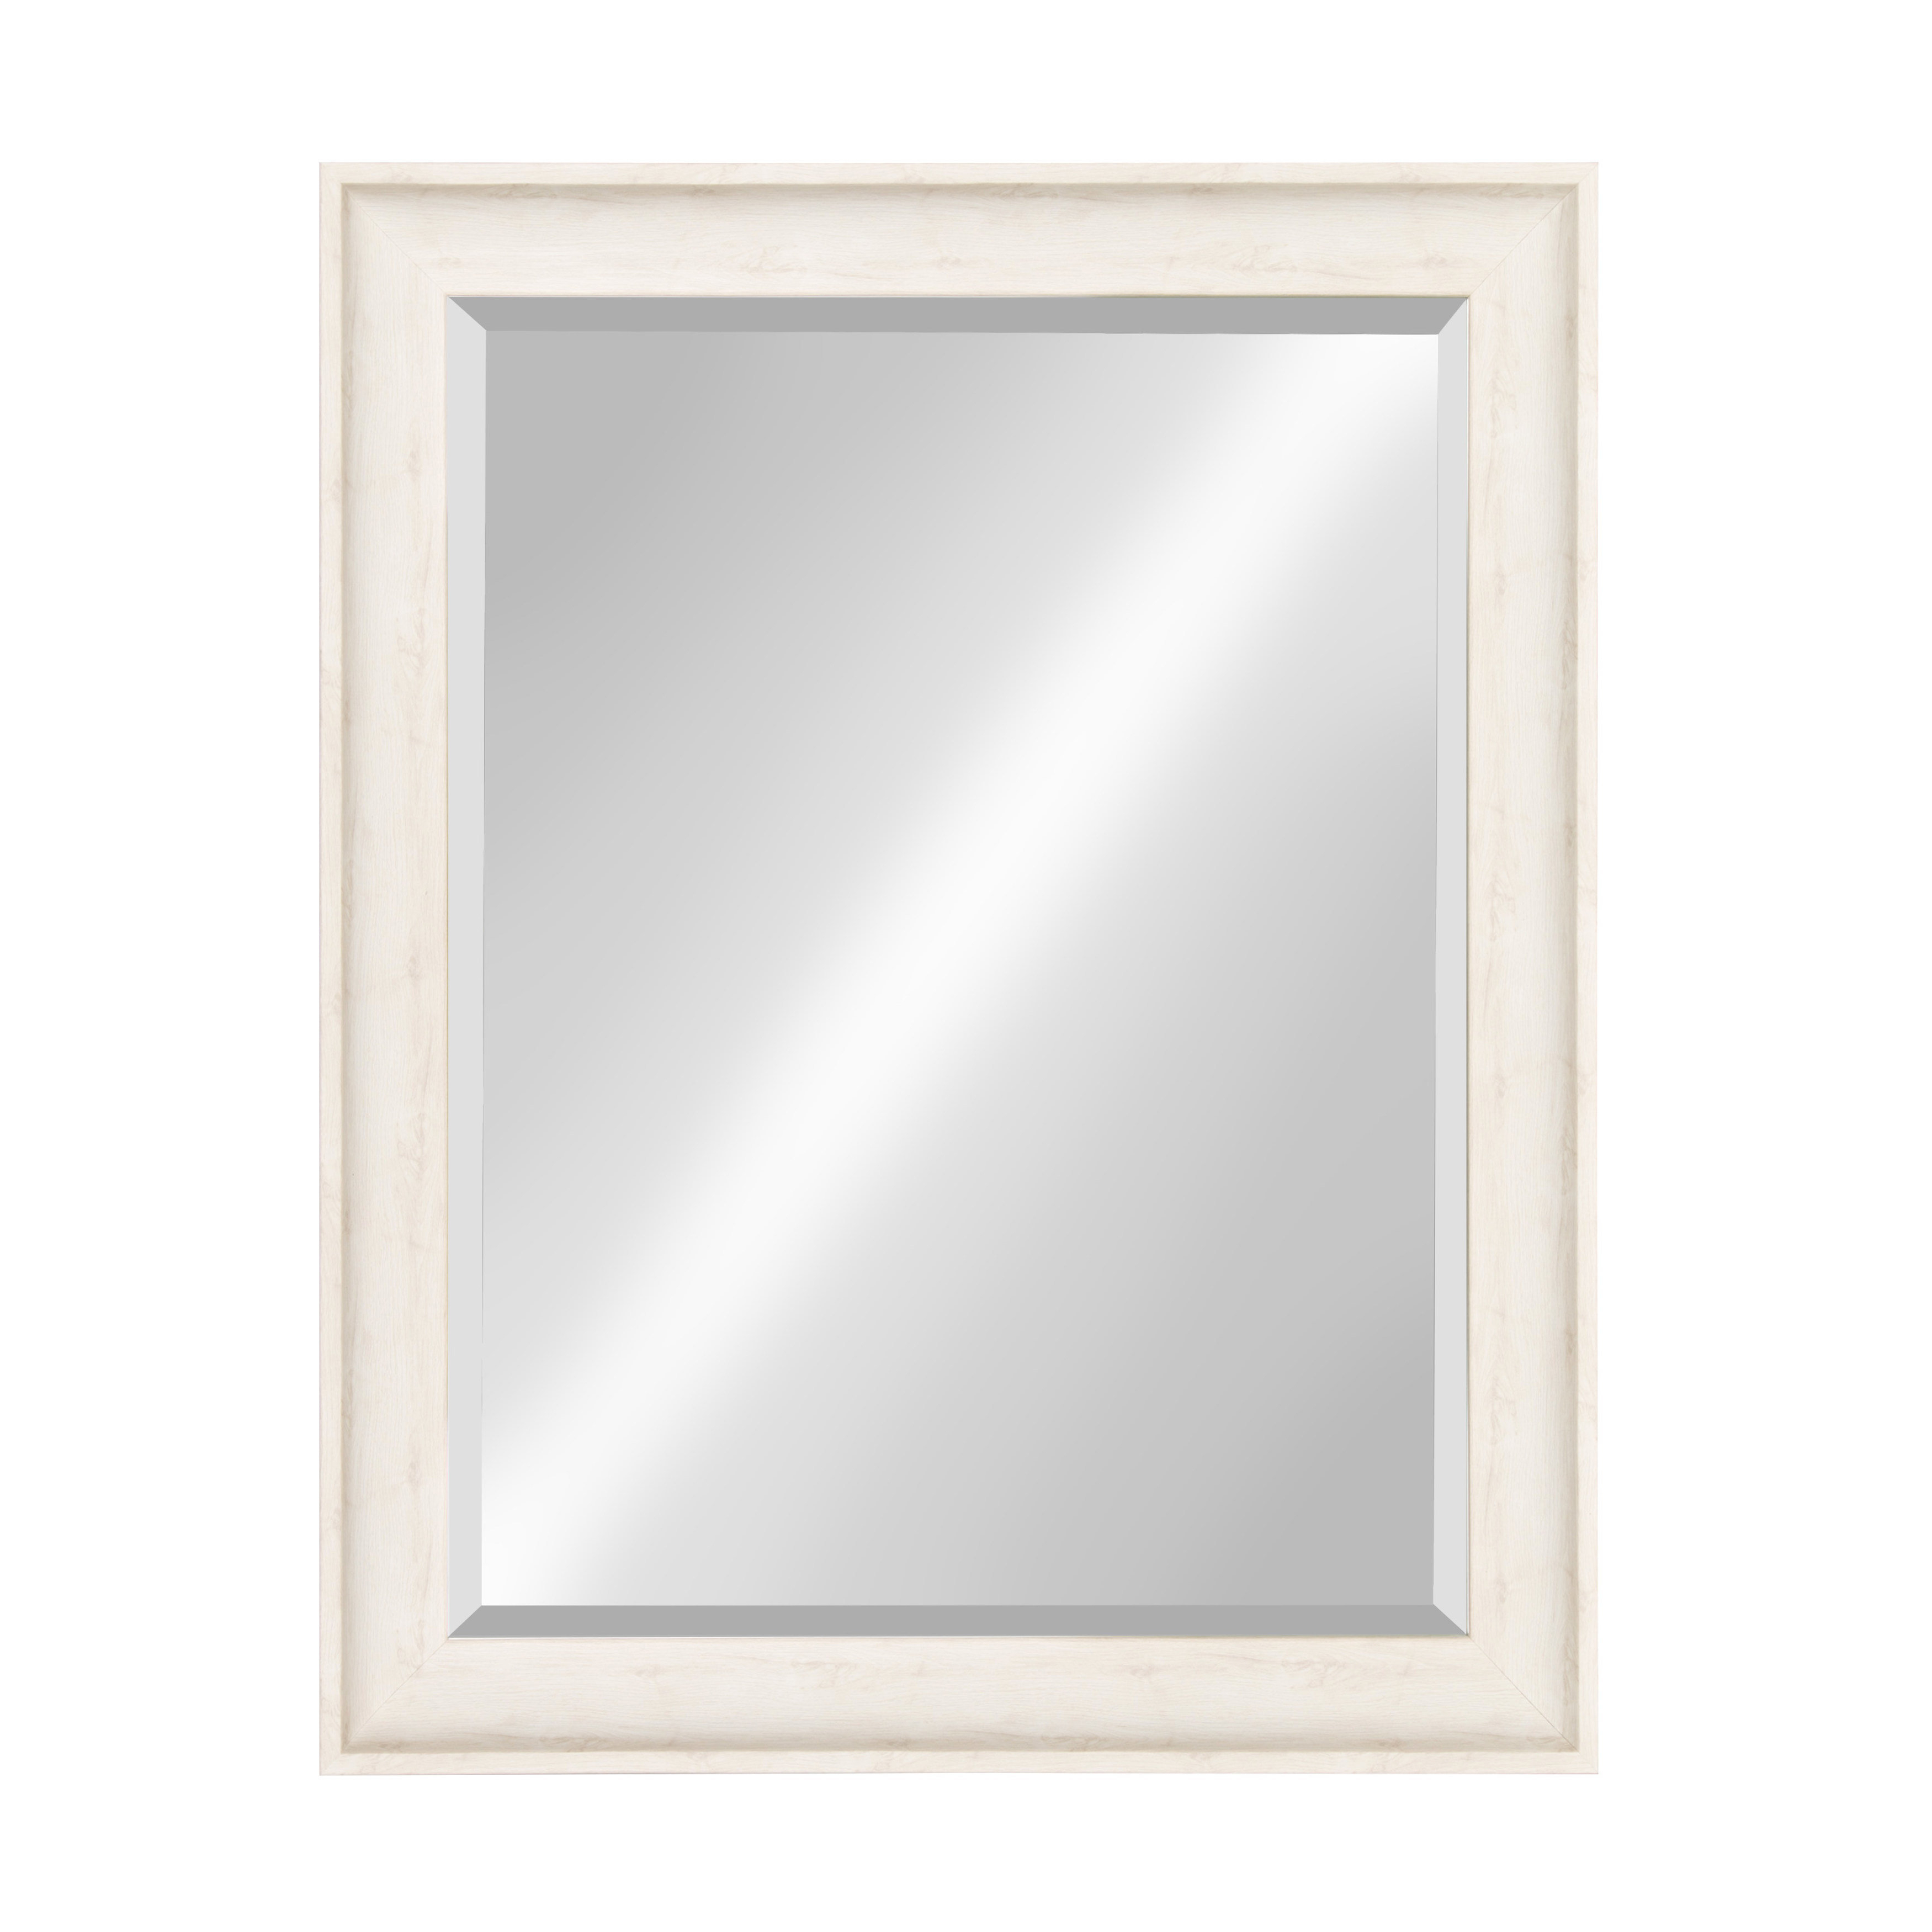 Saylor Wall Mirror | Joss & Main Intended For Maude Accent Mirrors (Image 12 of 20)